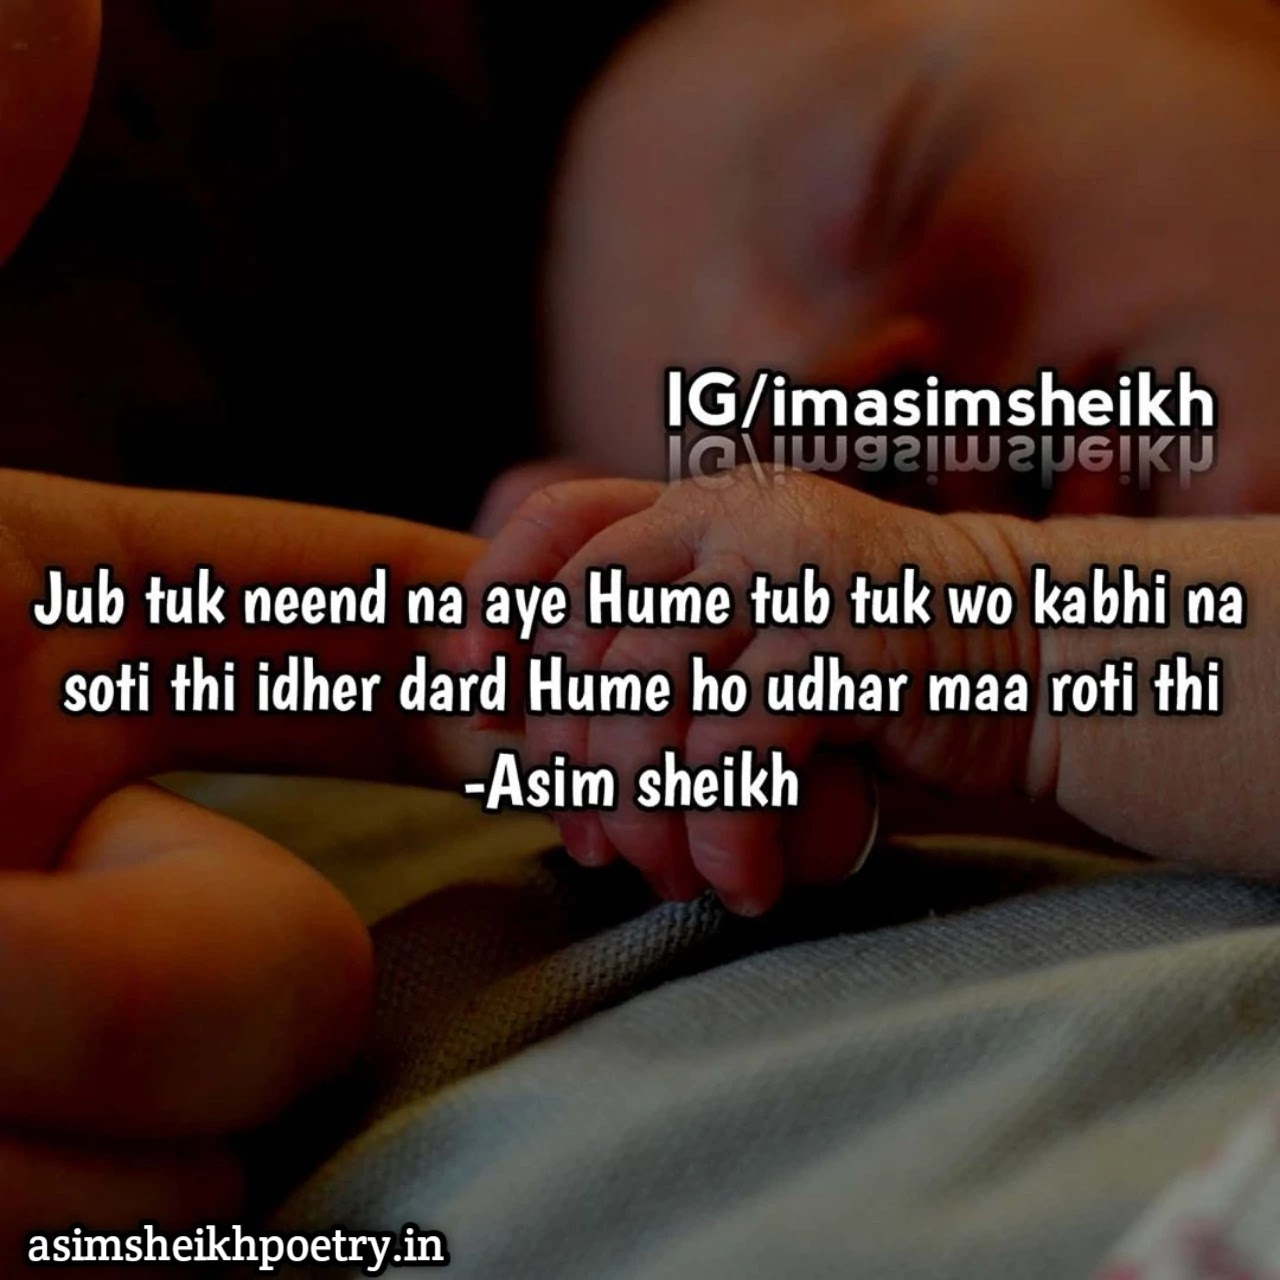 shayari about mother | maa shayari | asimsheikhpoetry.in